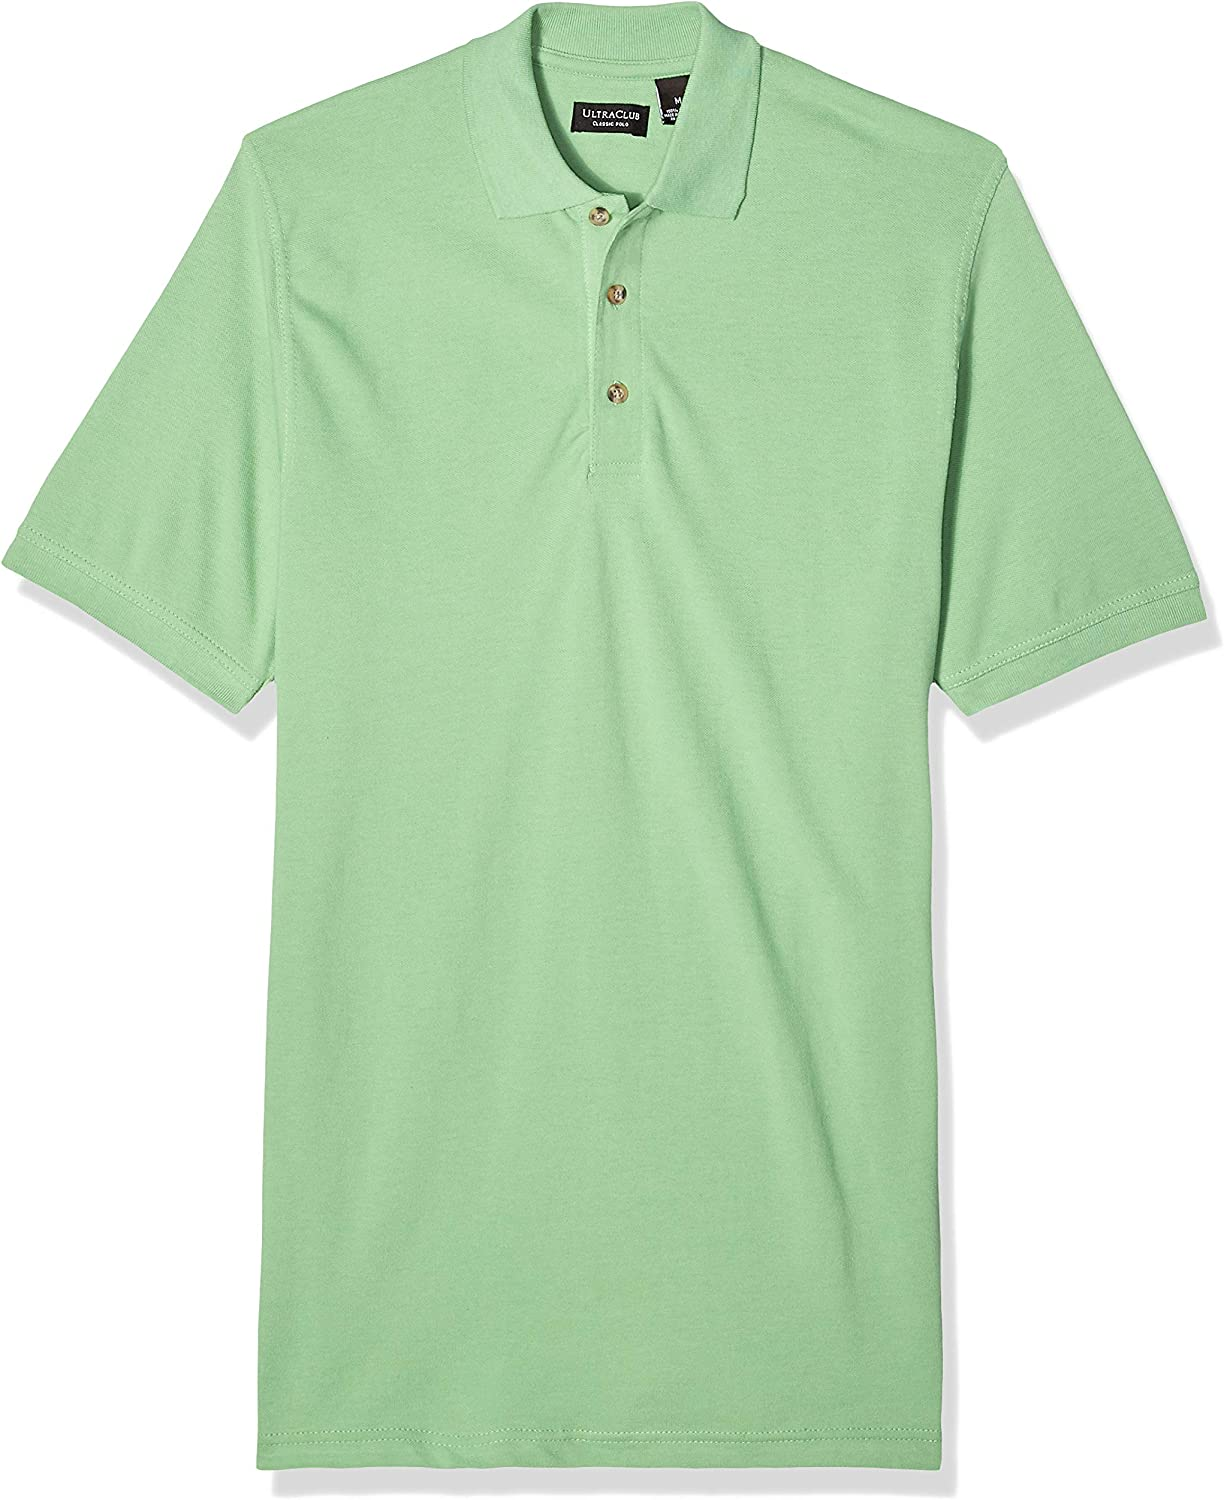 UltraClubs Men's Classic Pique Polo